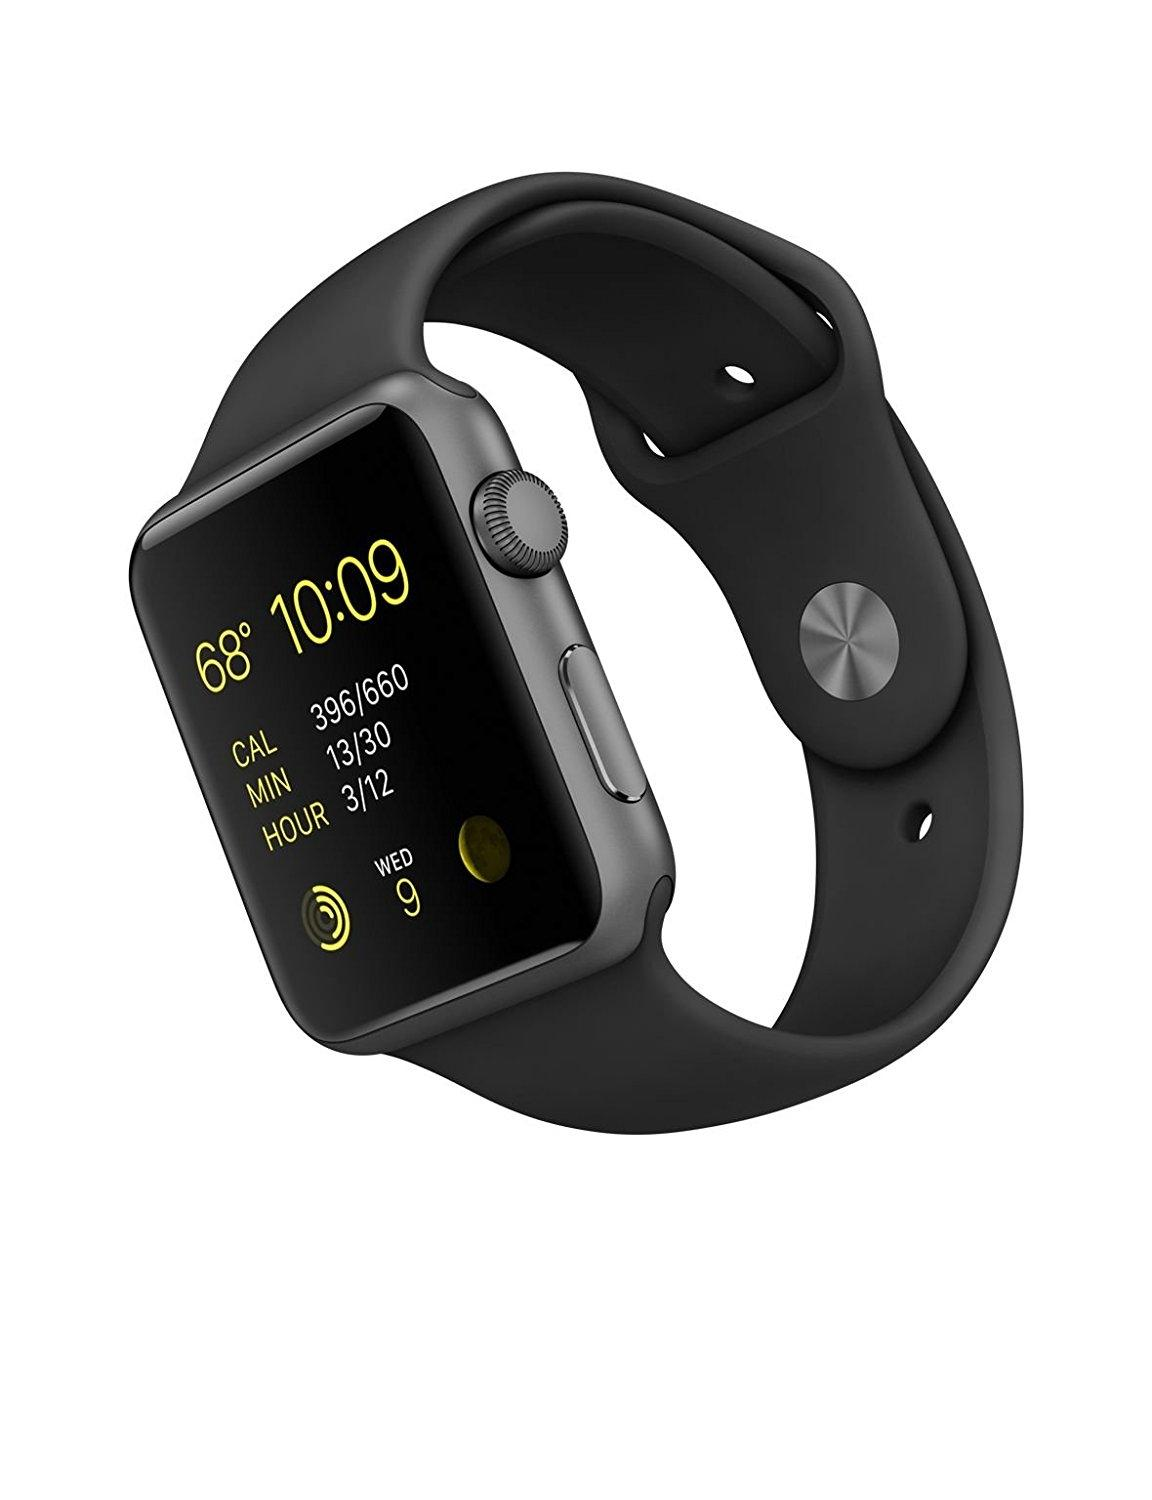 26bf024d381 Rechargeable Iwatch Smart Watch - Supports Sim Memory Camera